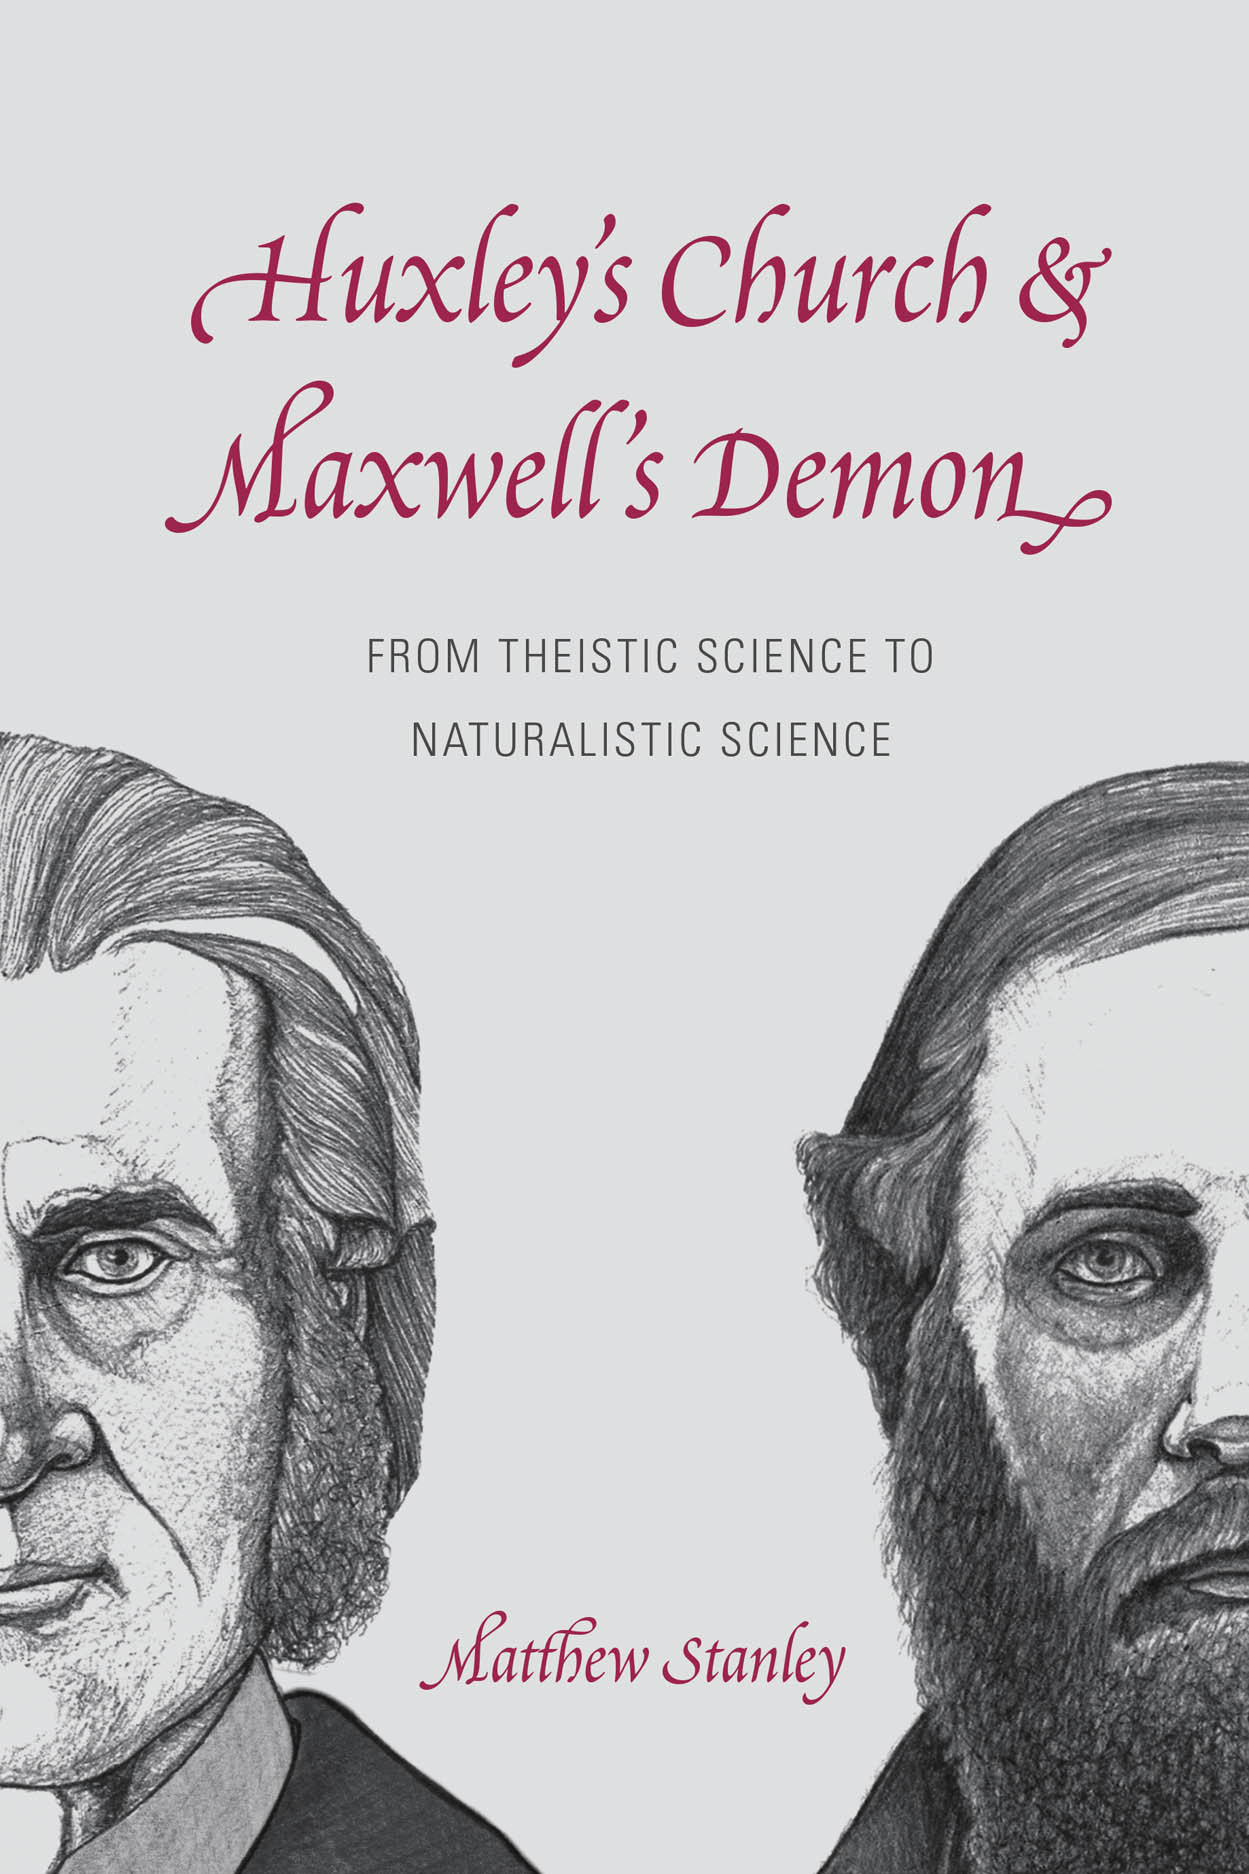 Huxley's Church and Maxwell's Demon: From Theistic Science to Naturalistic Science